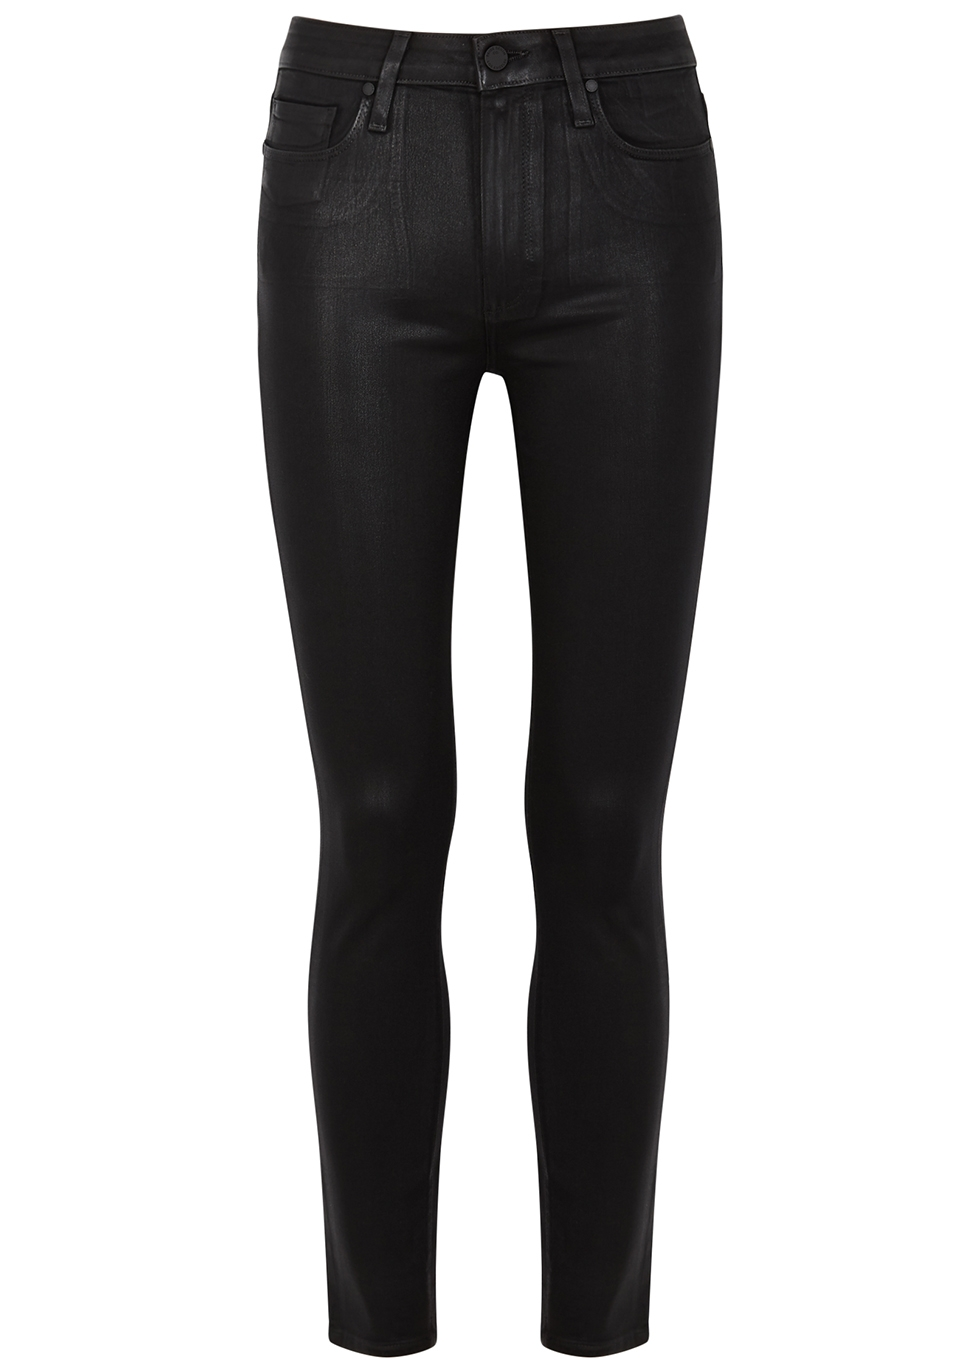 Hoxton Ankle black coated skinny jeans